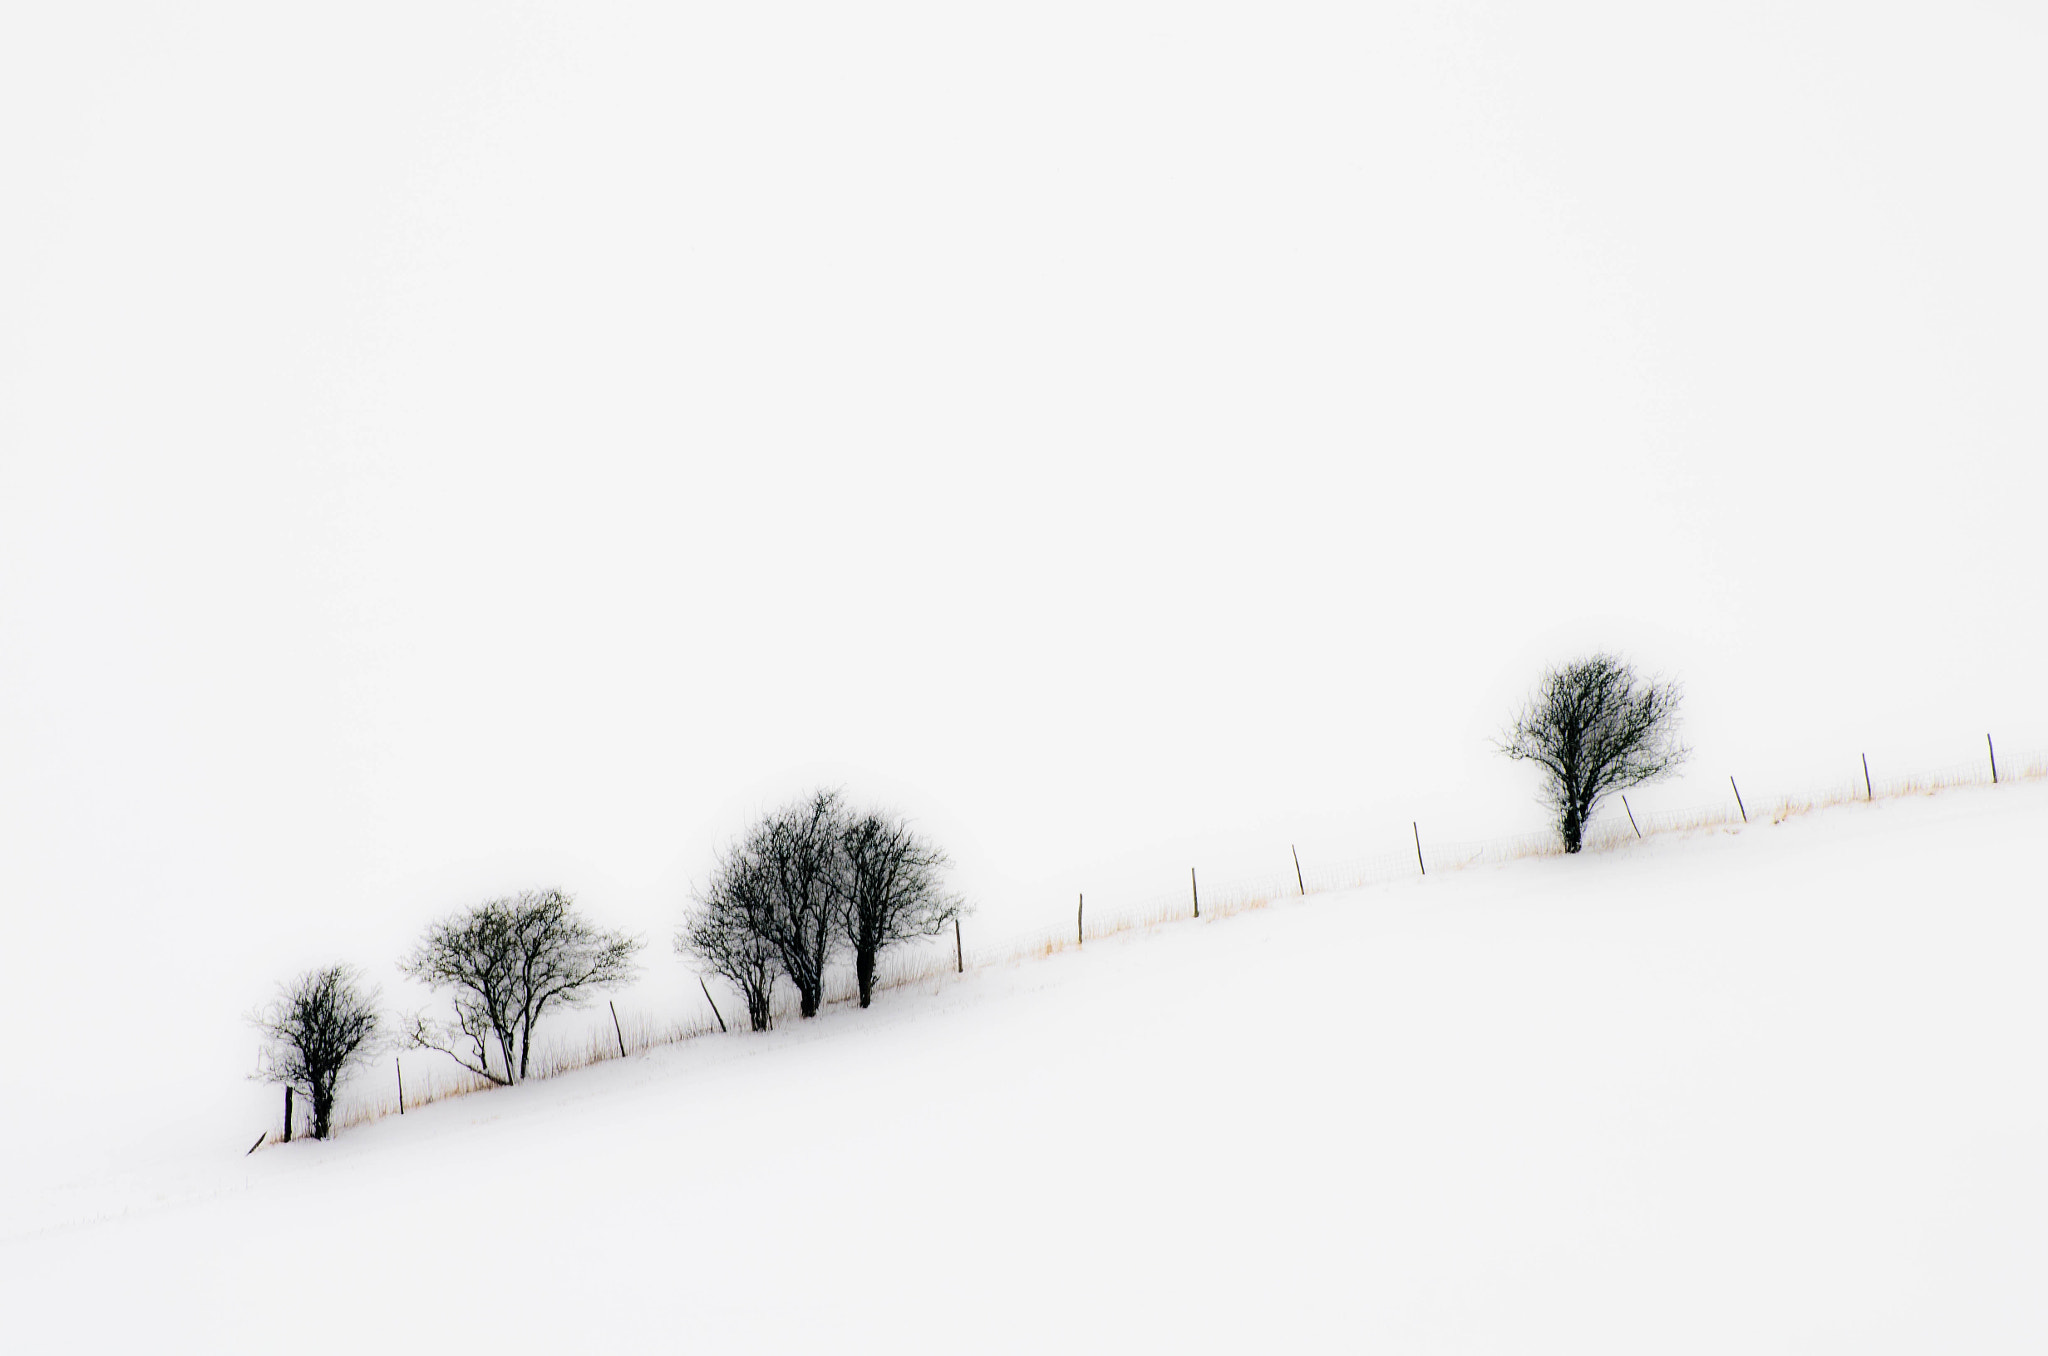 Photograph Winter Trees by Pawel Niktos on 500px